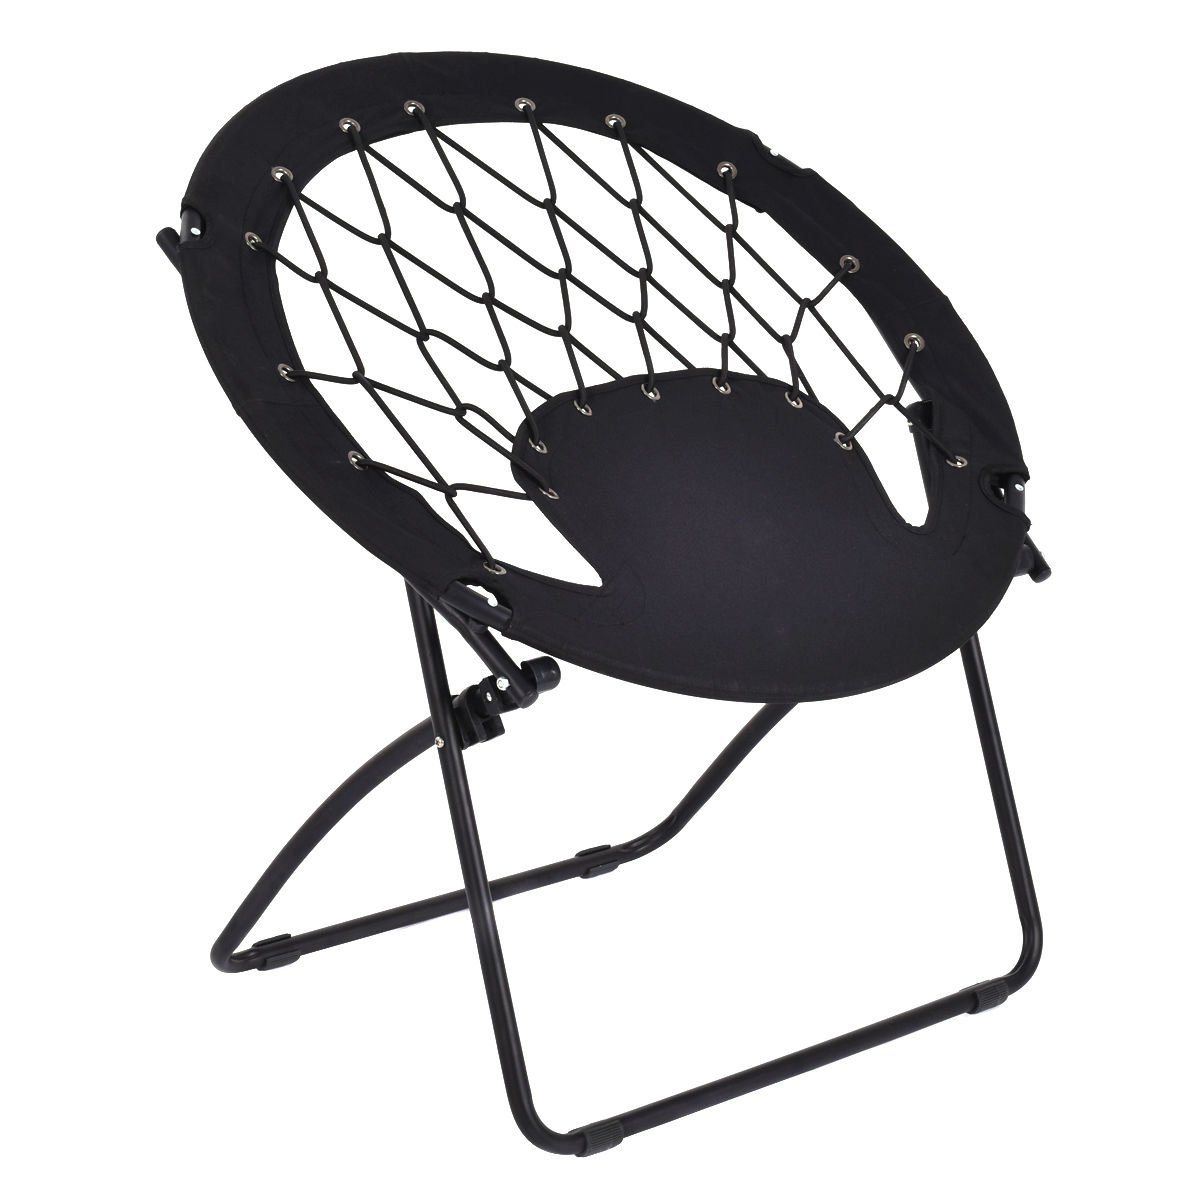 Giantex Folding Bunjo Bungee Chair Outdoor Camping Gaming Hiking Garden Patio Round Web Portable Steel Bungee Dish Chairs for Adults Kids, Black